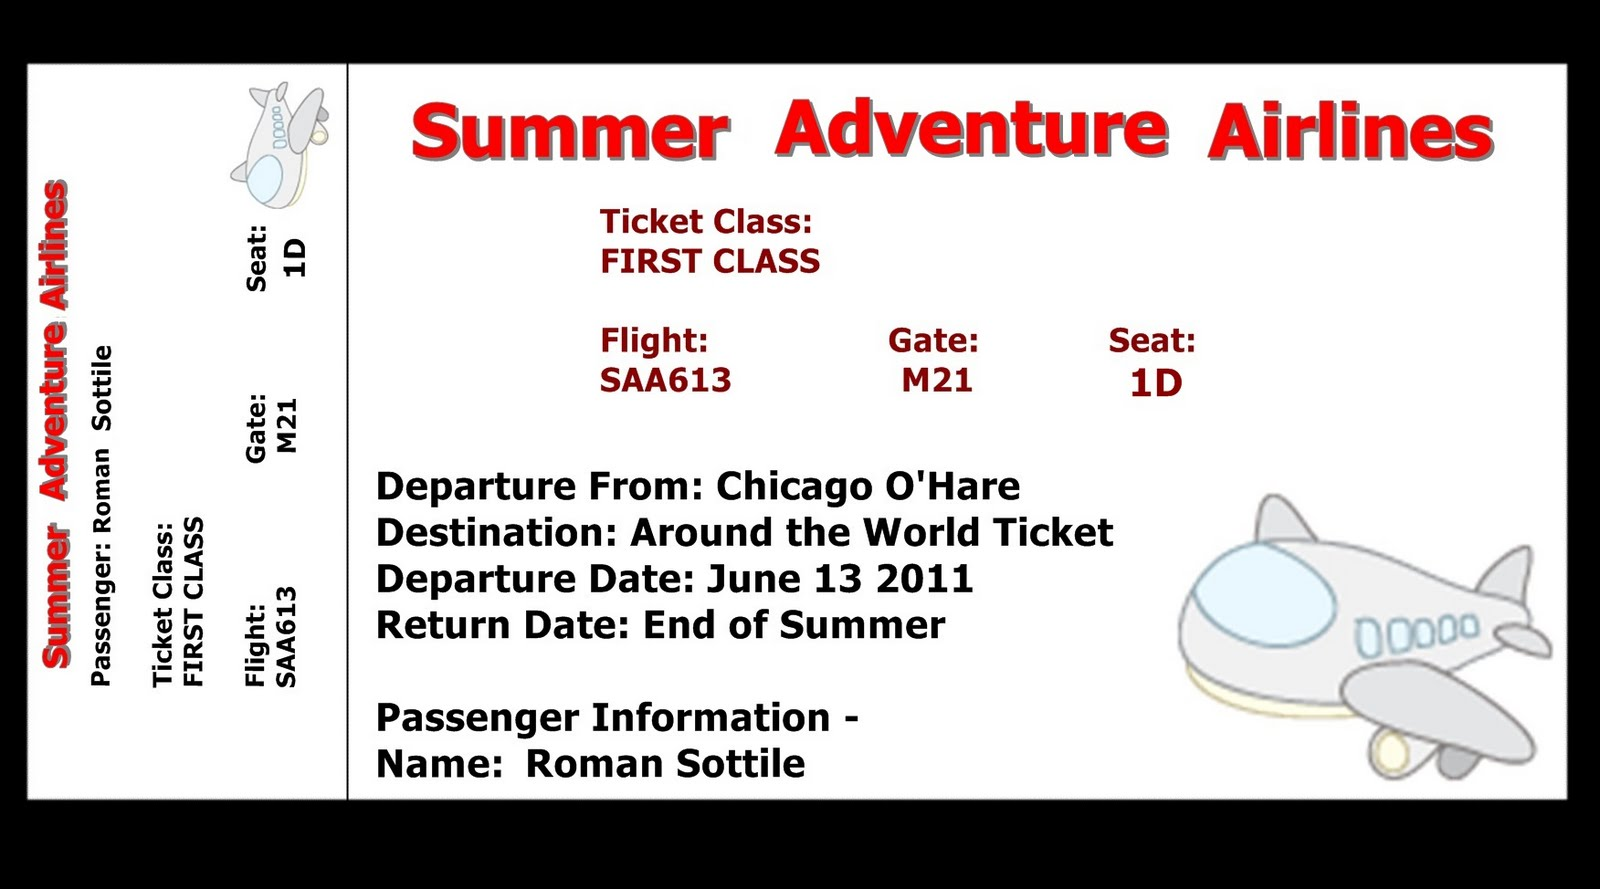 Printable airline ticket templates Mike Folkerth - King of Simple ...